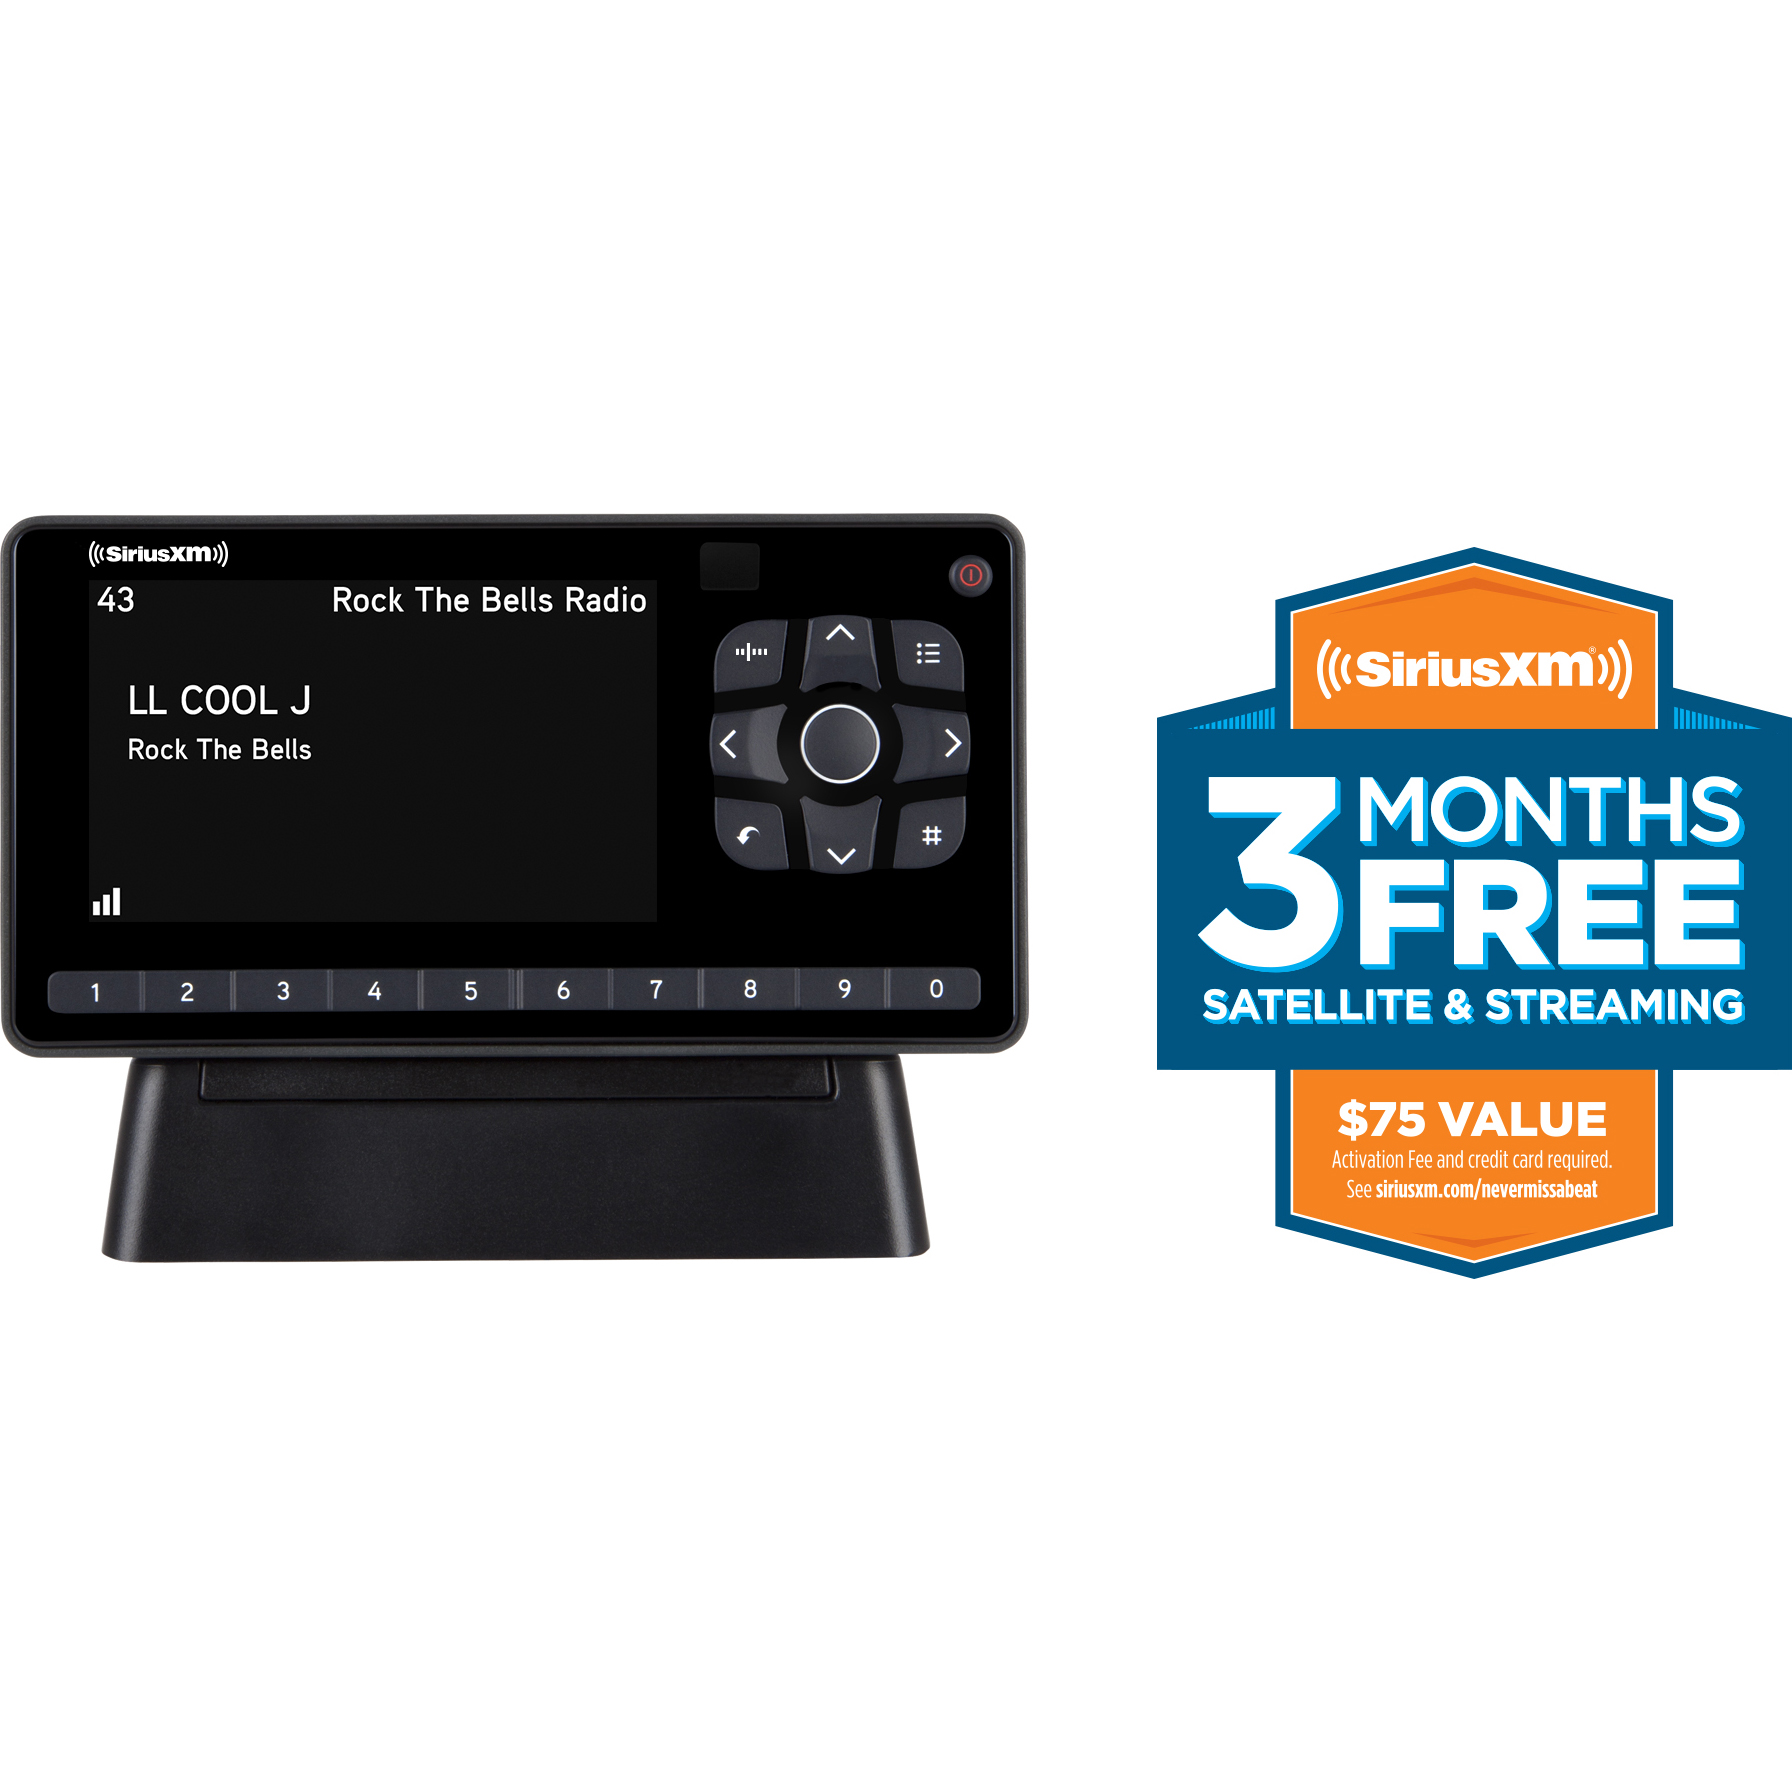 SiriusXM SXEZR1H1 XM Onyx EZR Satellite Radio with Free 3 Months Satellite and Streaming Service